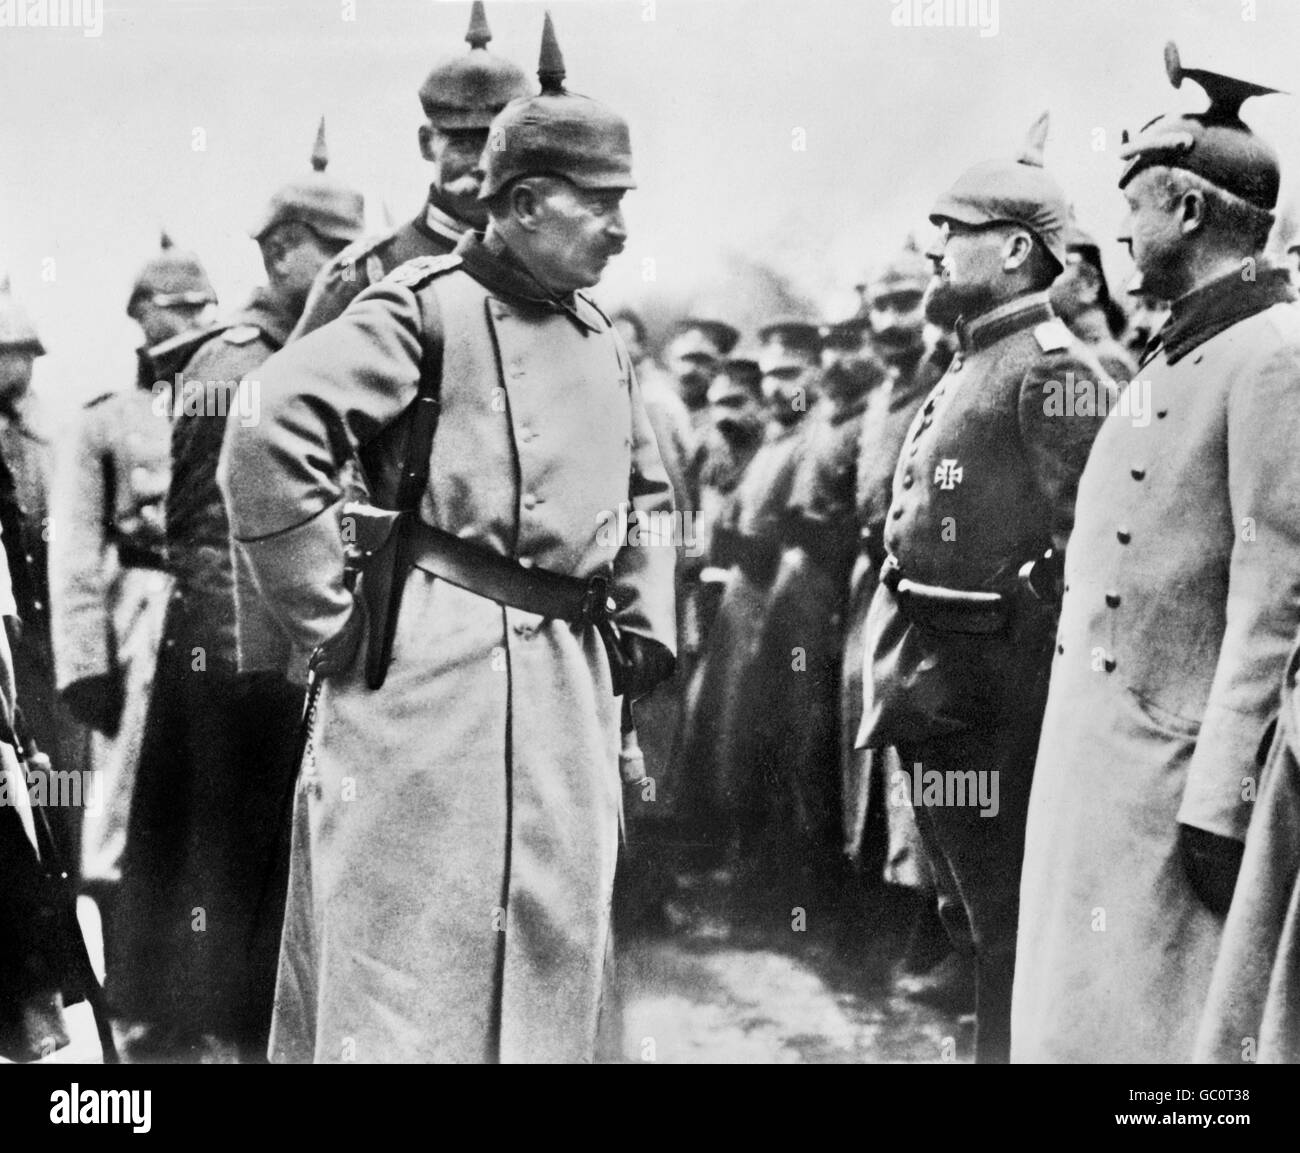 Kaiser Wilhelm II (1859-1941), Emperor of Germany and King of Prussia, inspecting his troops during WWI. Photo from - Stock Image